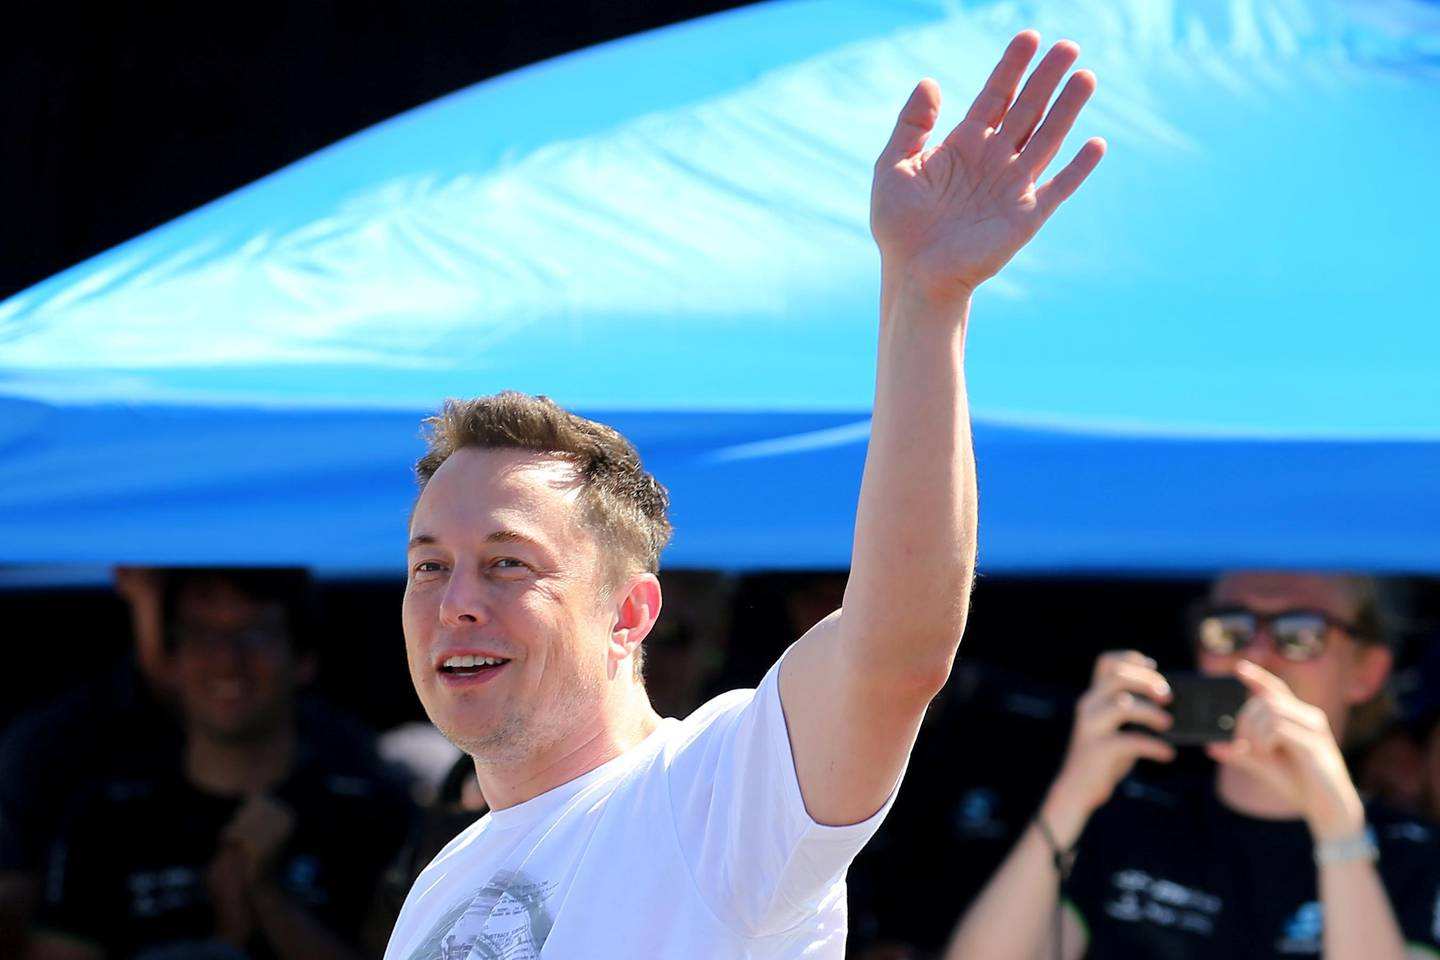 FILE PHOTO: Elon Musk, founder, CEO and lead designer at SpaceX and co-founder of Tesla, arrives at the SpaceX Hyperloop Pod Competition II in Hawthorne, California, U.S., August 27, 2017.  REUTERS/Mike Blake/File Photo